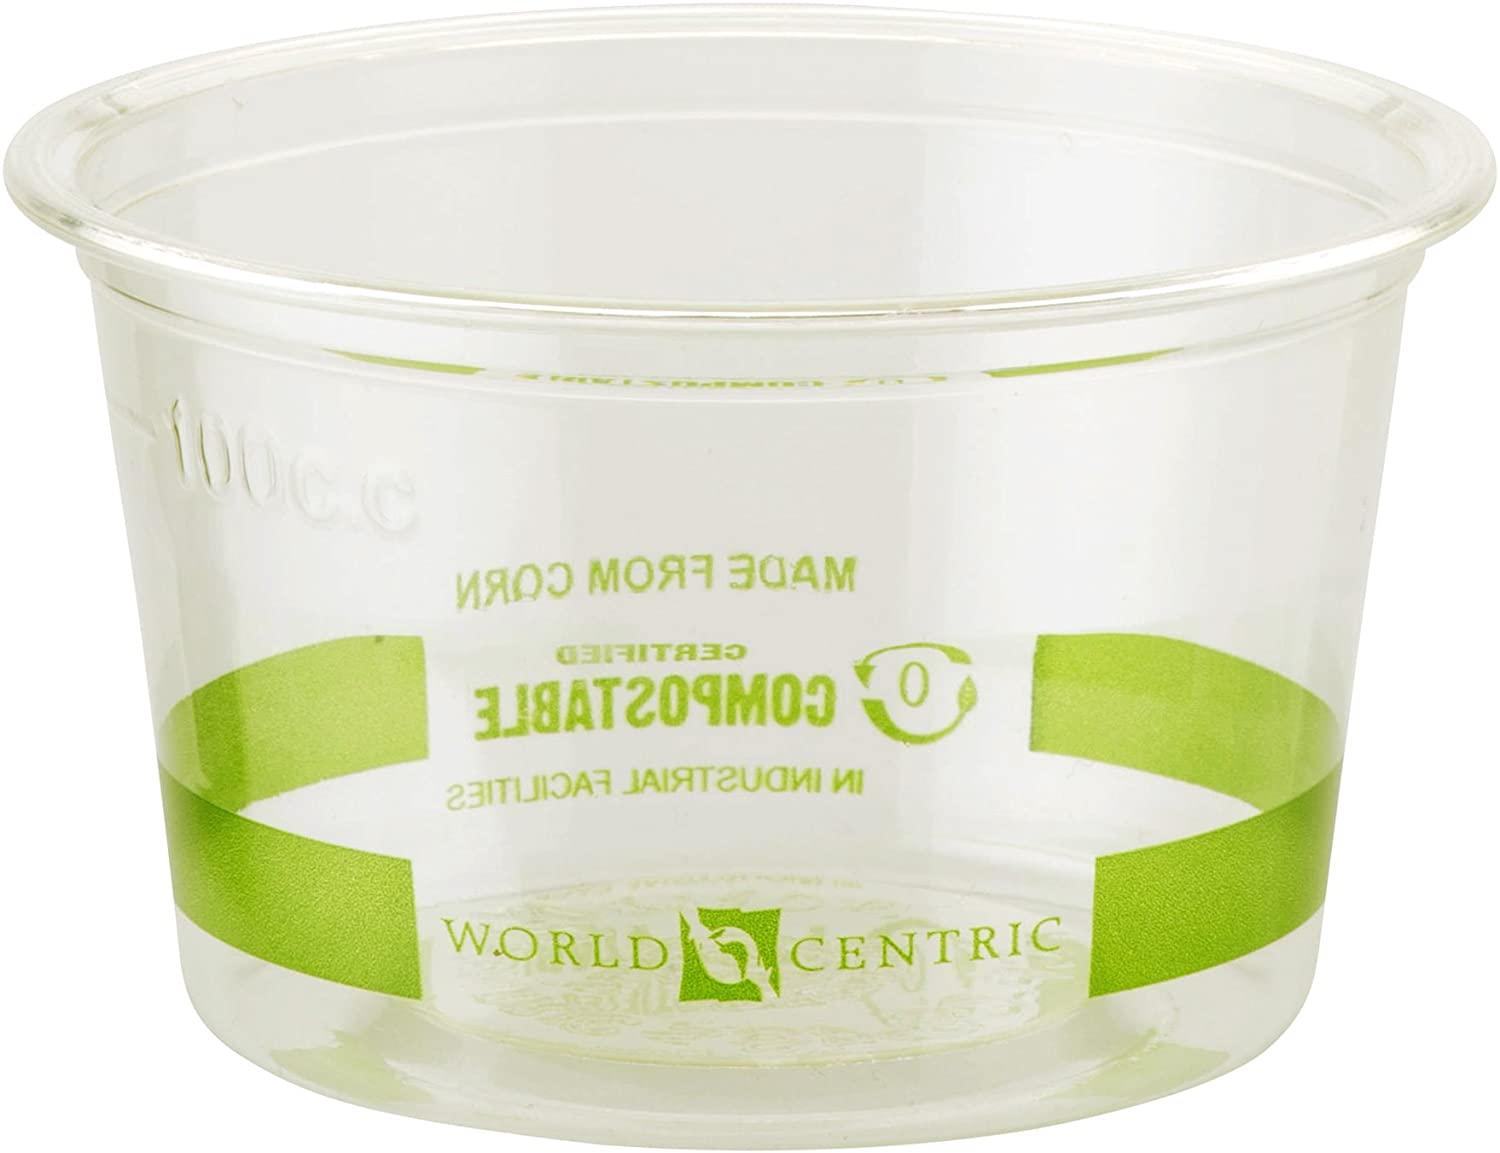 World Centric CP-CS-4S 100% Compostable Ingeo Souffle Cups, 4 oz., Clear (Pack of 1000)